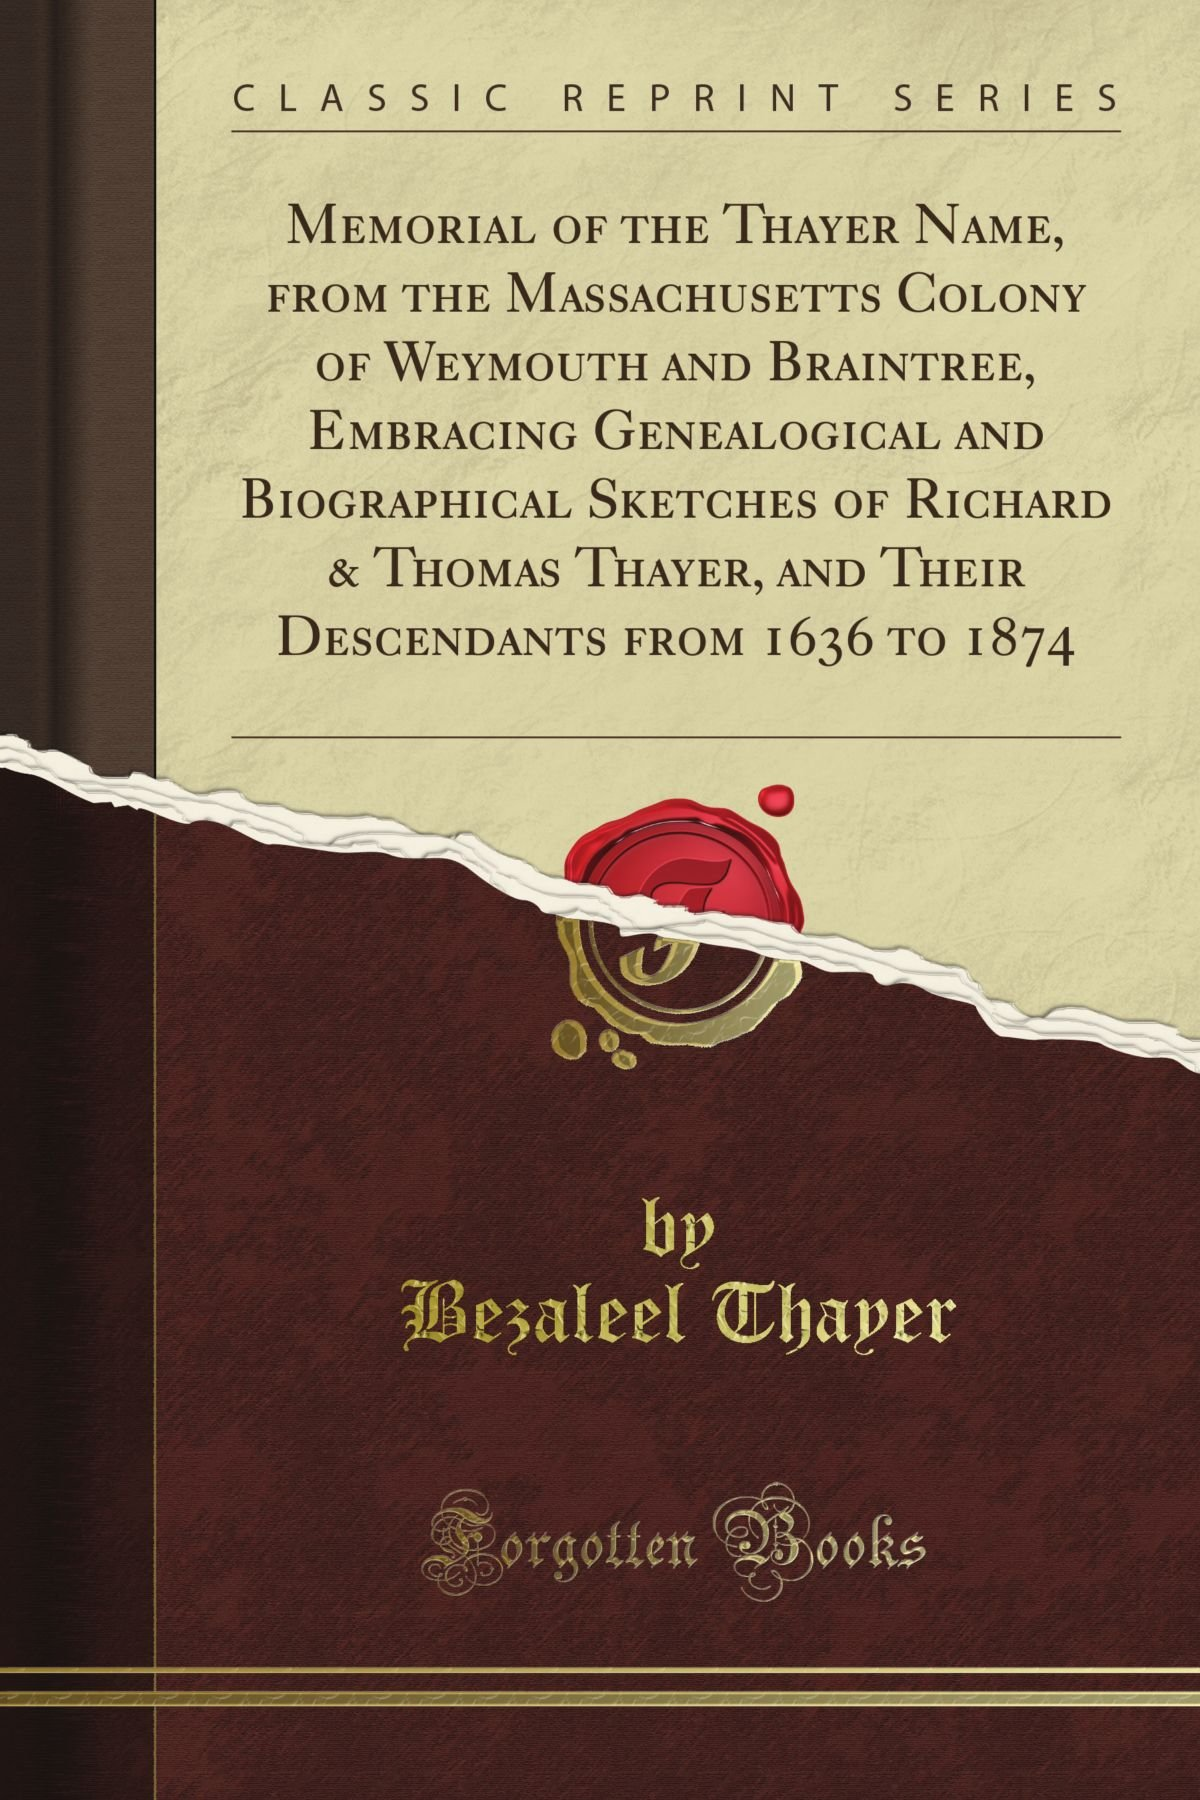 Memorial of the Thayer Name, from the Massachusetts Colony of Weymouth and Braintree, Embracing Genealogical and Biographical Sketches of Richard & from 1636 to 1874 (Classic Reprint)